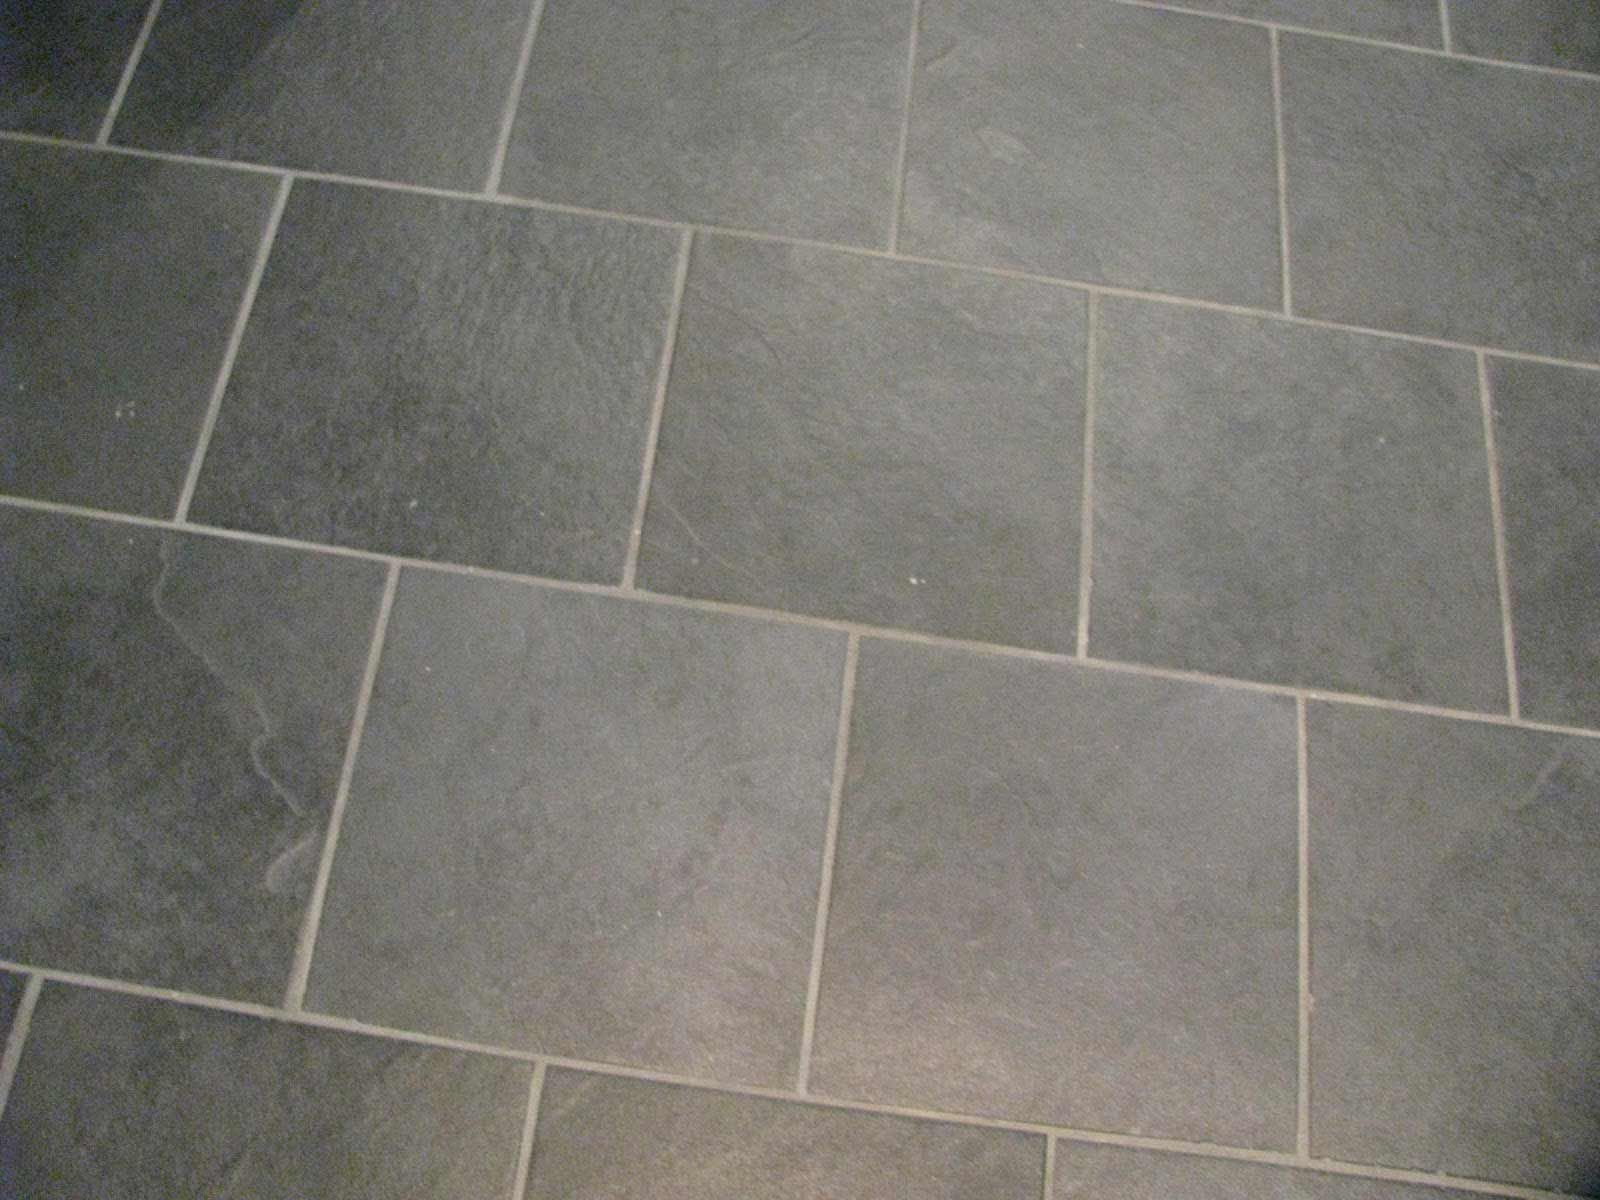 Black Slate Porcelain Brick Tile Design For Bathrooms